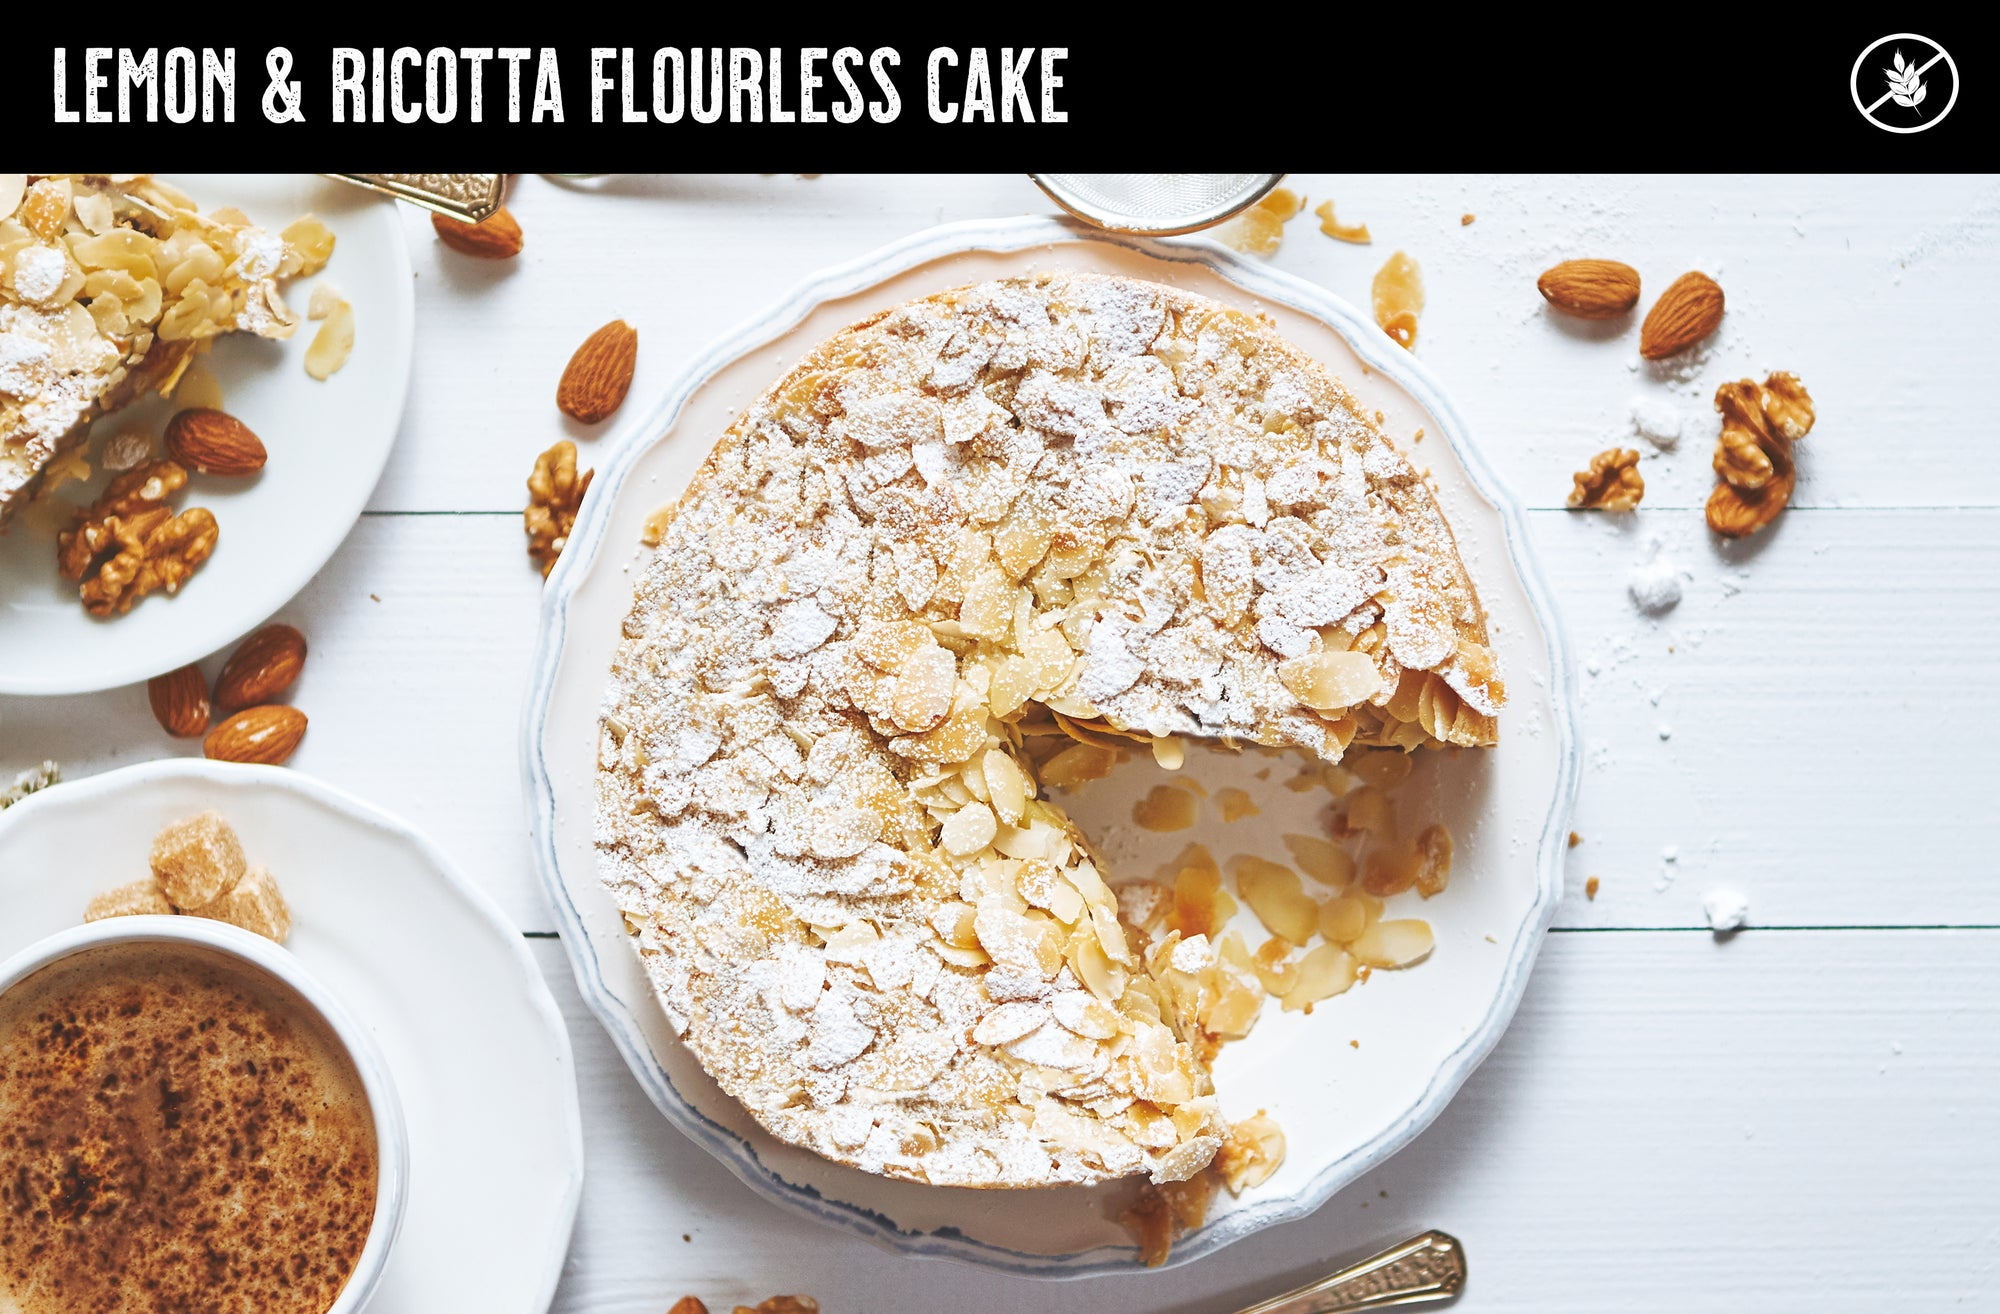 Lemon & Ricotta Flourless Cake